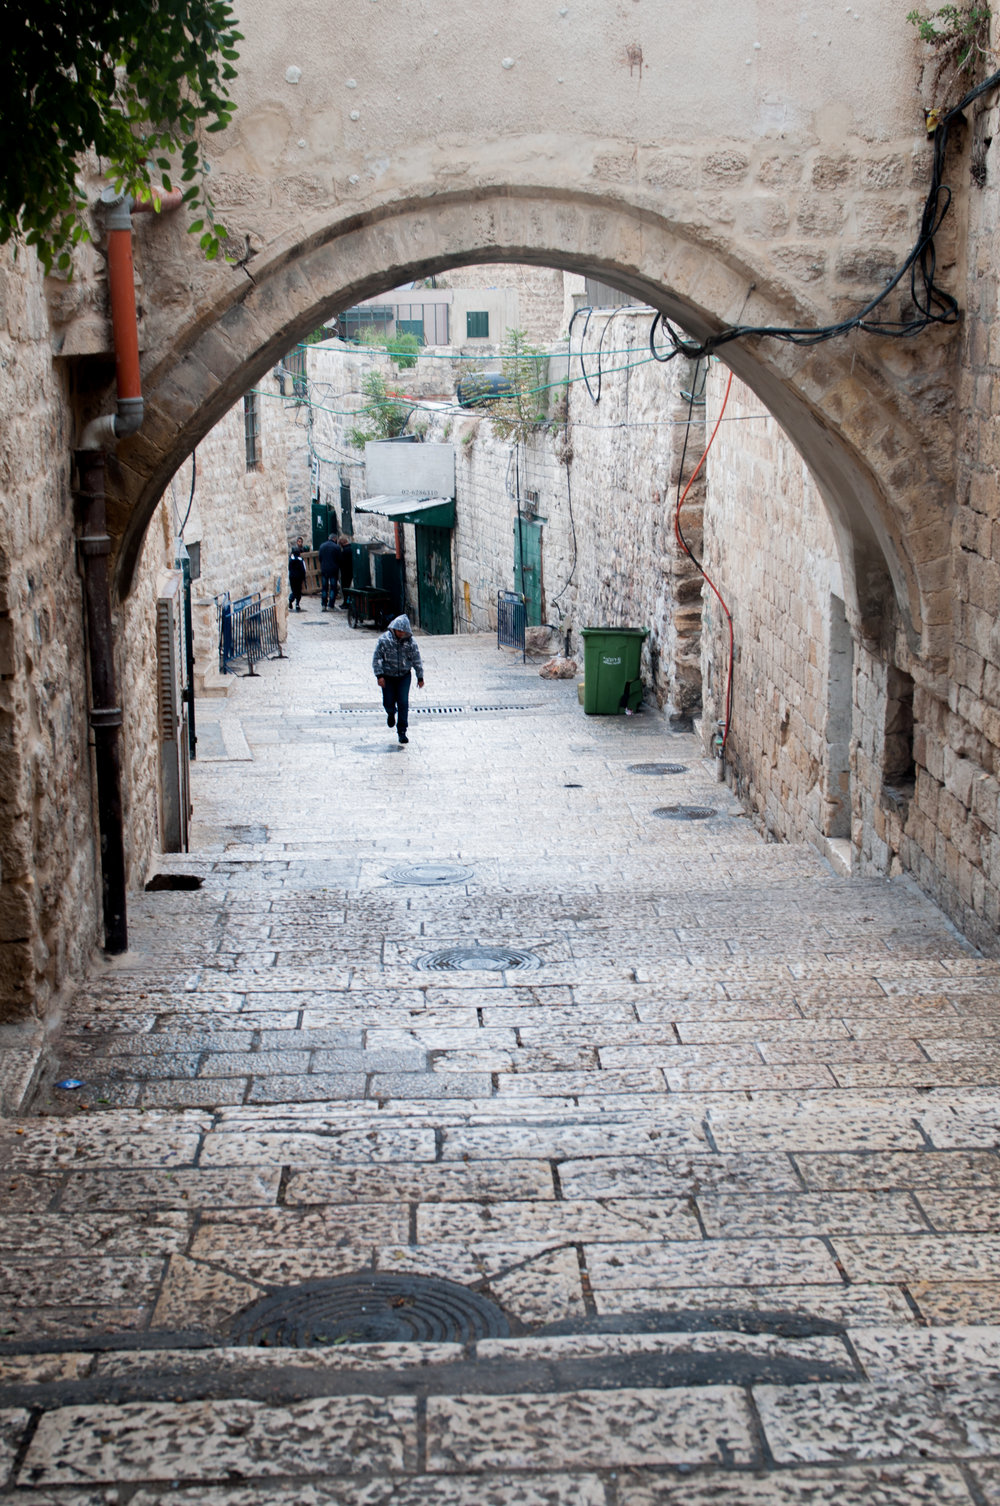 The Muslim Quarter  - Adjacent to the machneyehuda market, you can walk through a beautiful cobblestoned alley of arches up to the muslim area. It is far from affluent and you do see the hardships of the people in plain view.